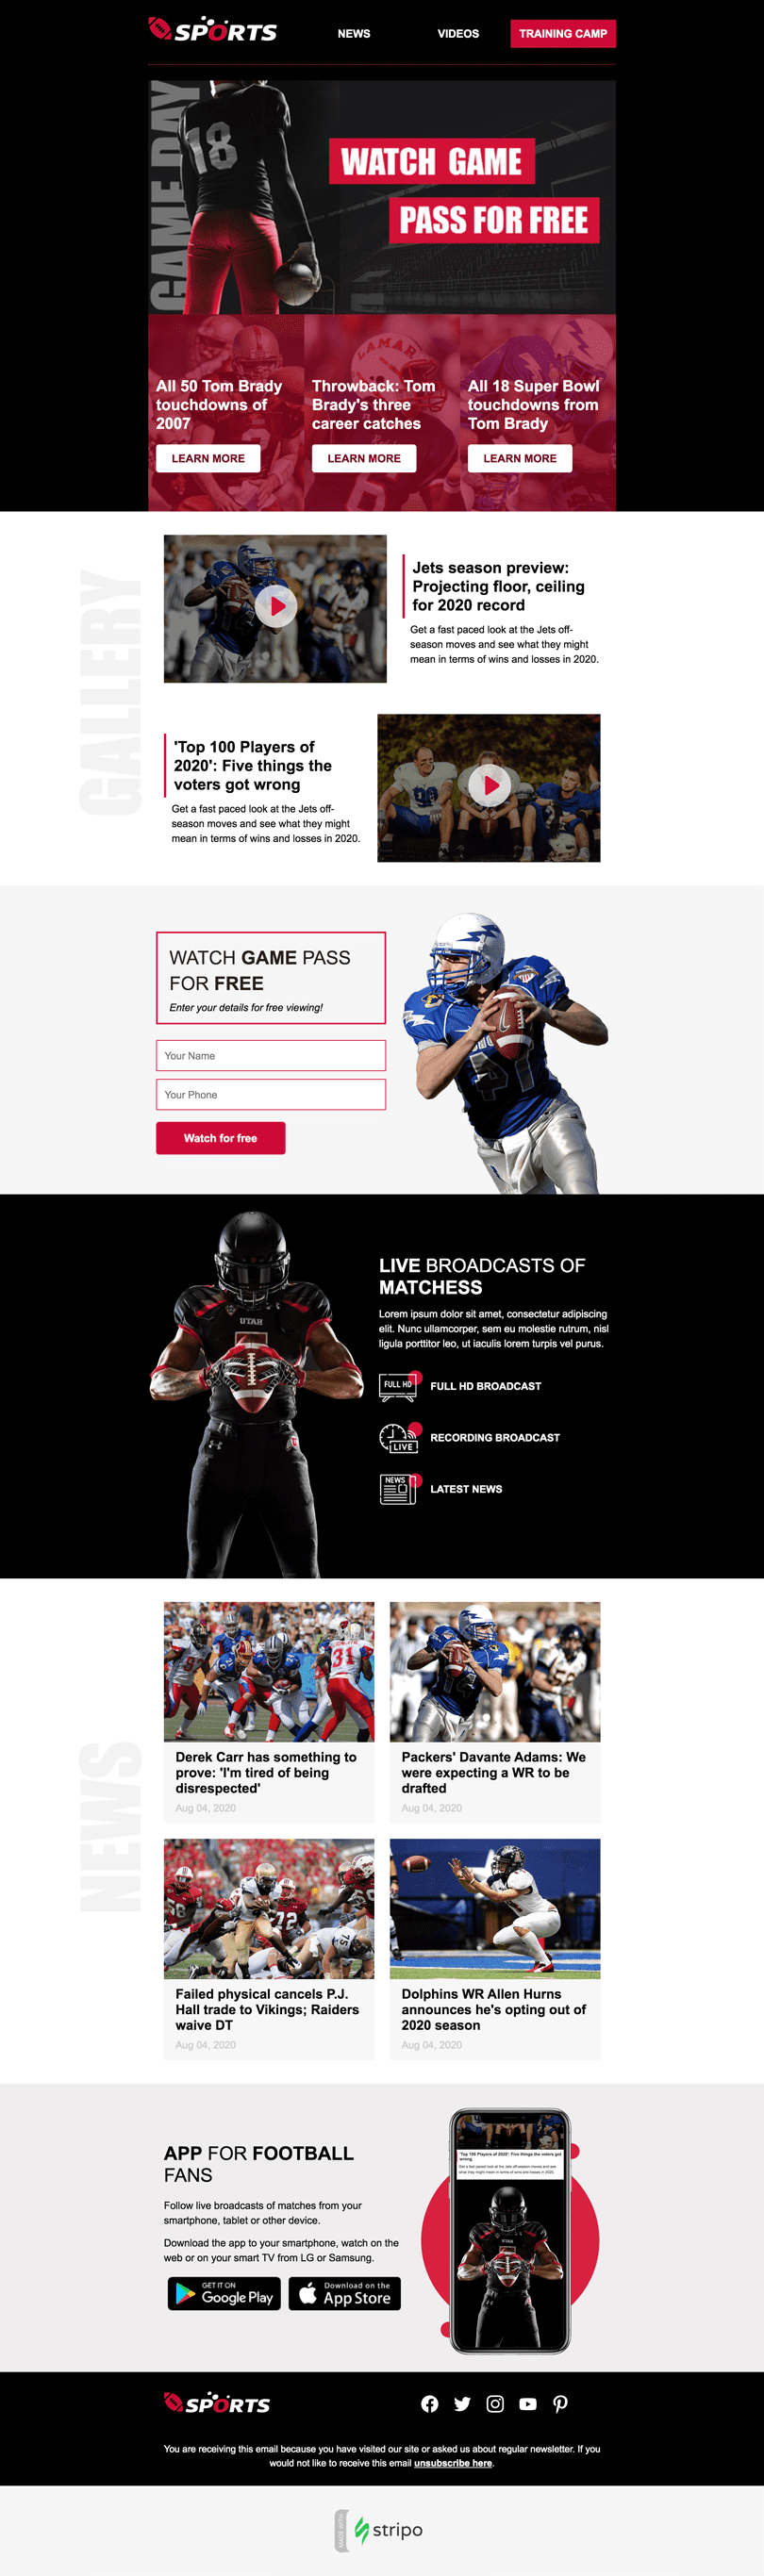 Super Bowl Email Template «Online Game» for Sports industry desktop view